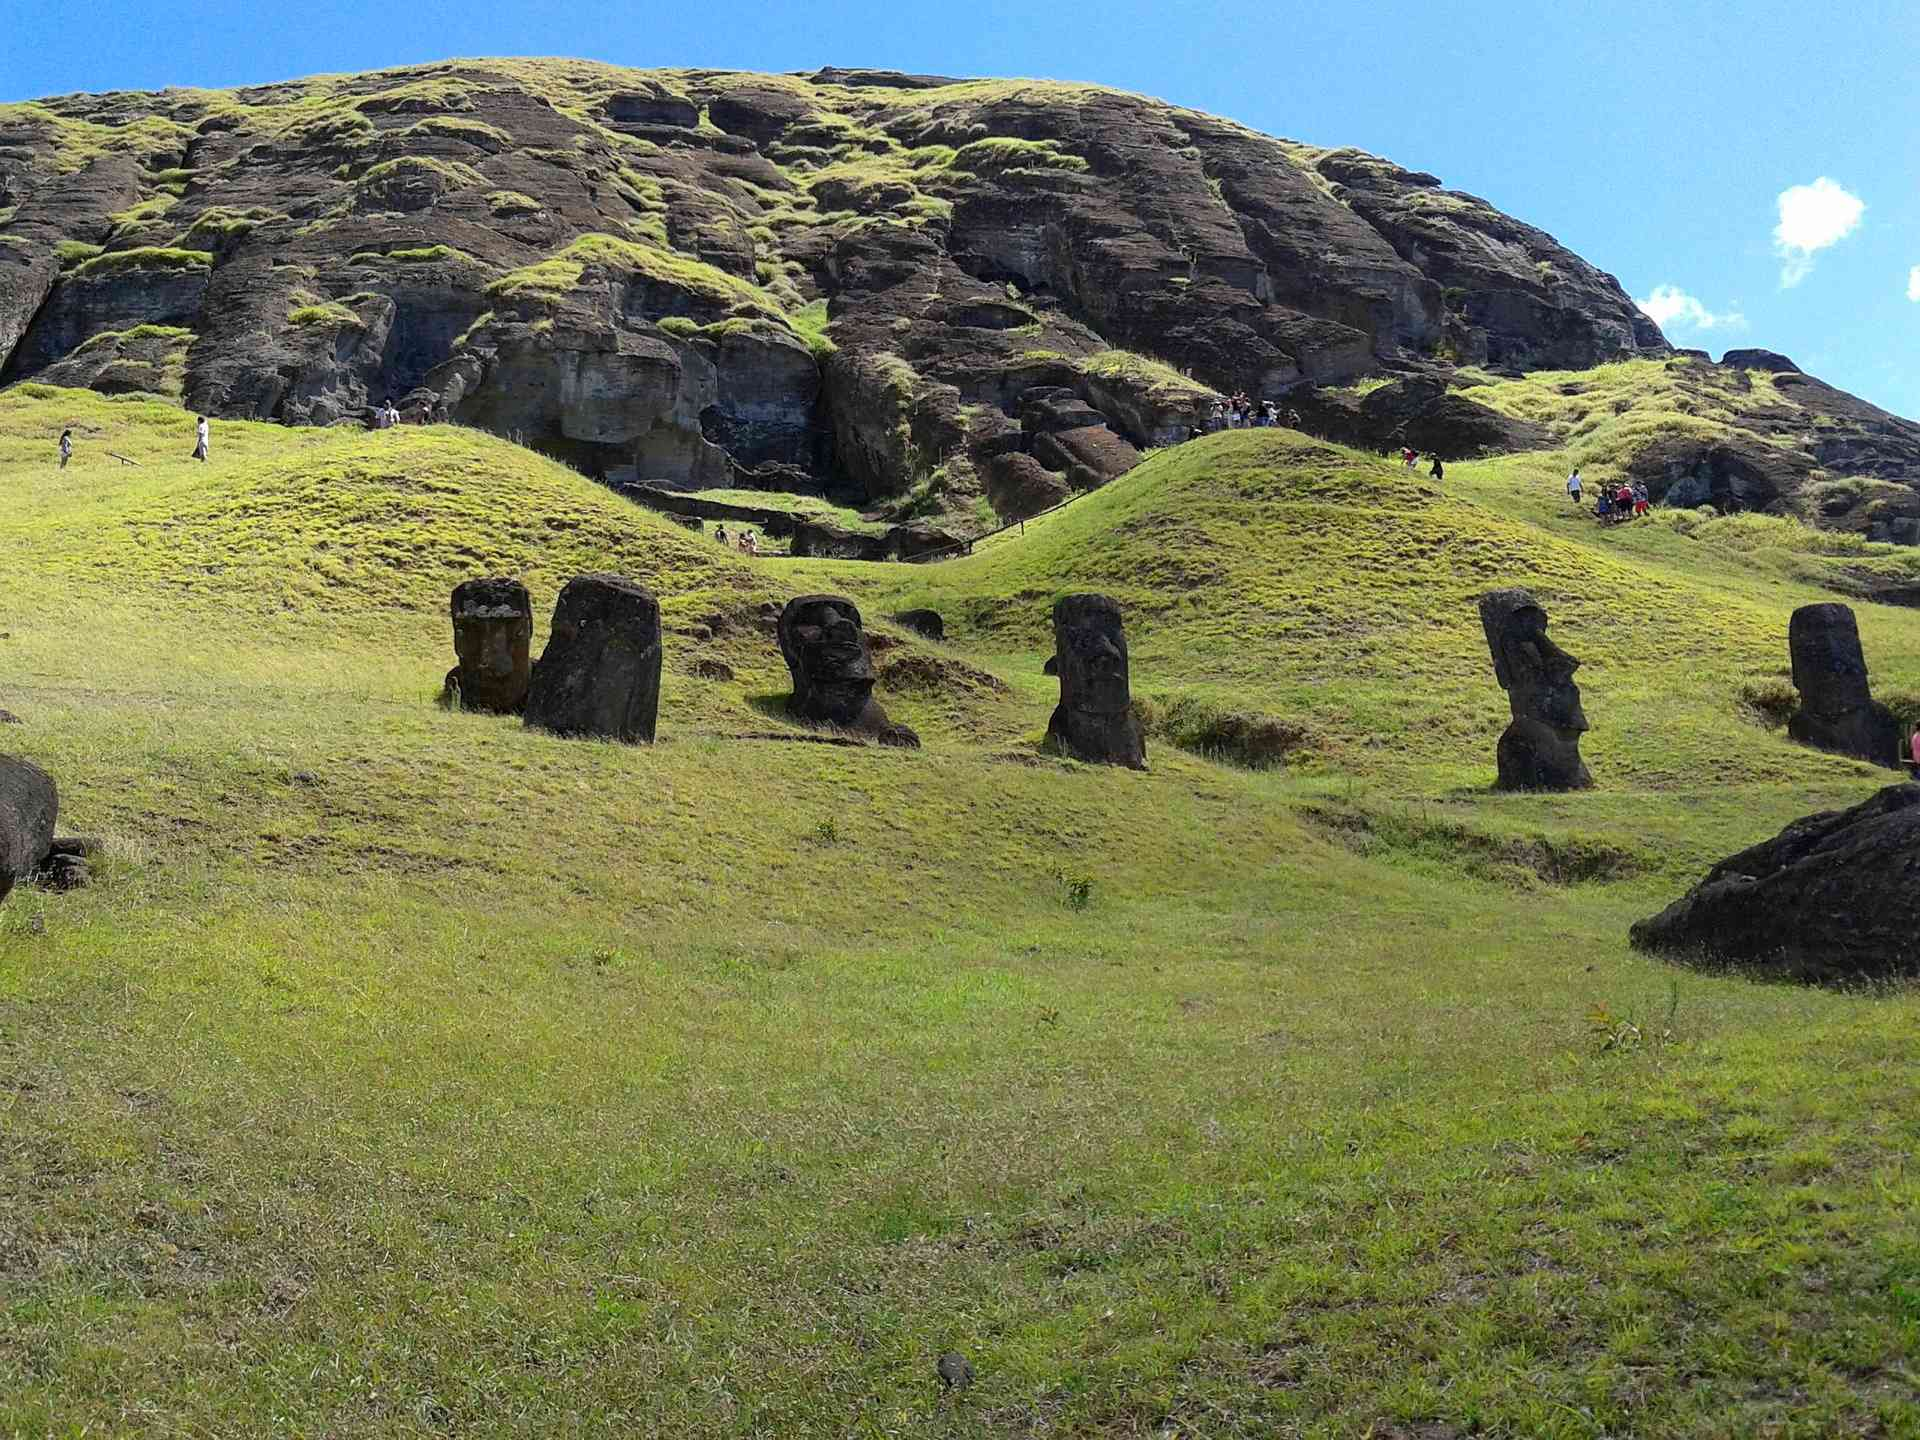 Rapa Nui National Park, Easter Island, Chile by Hugo-Leroy from Pixabay